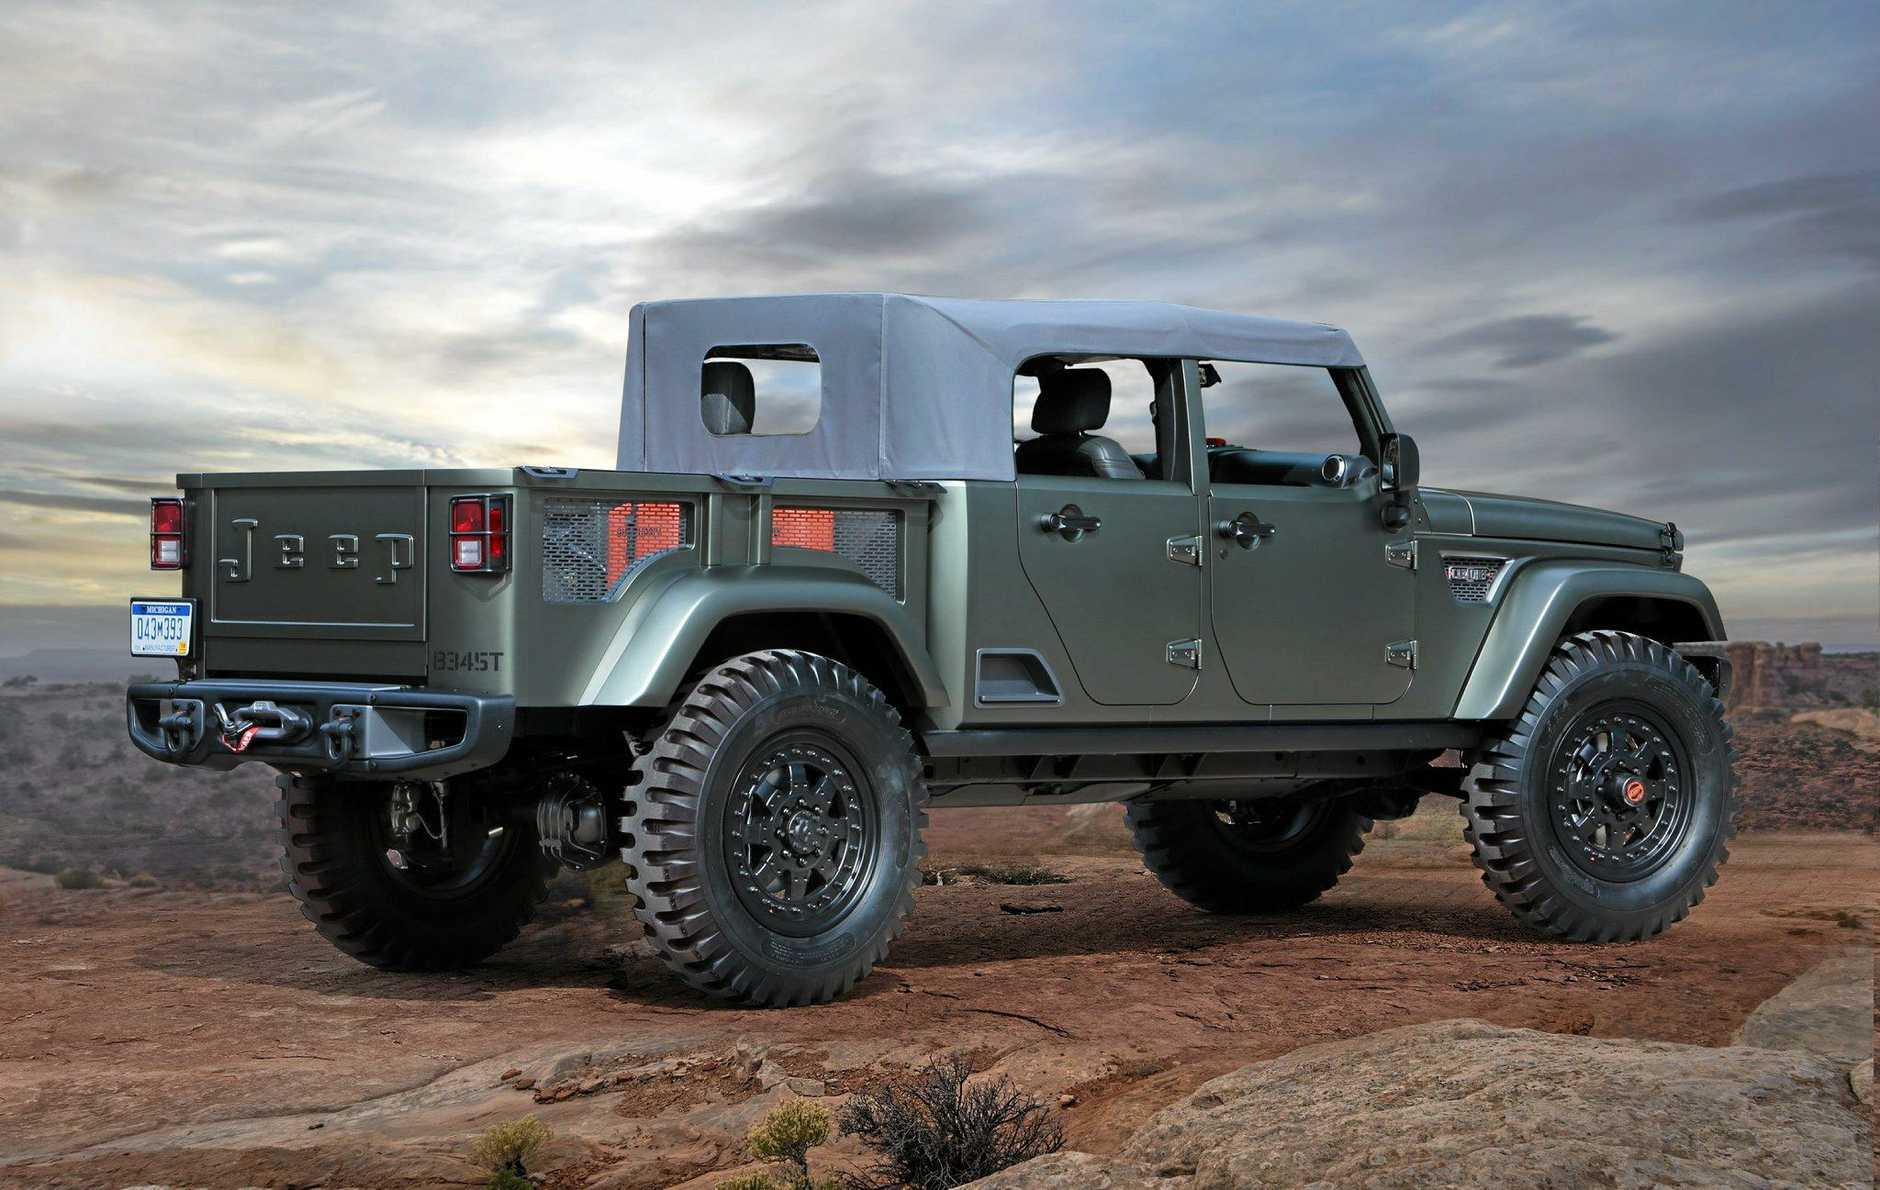 The Jeep Trailcat concept.